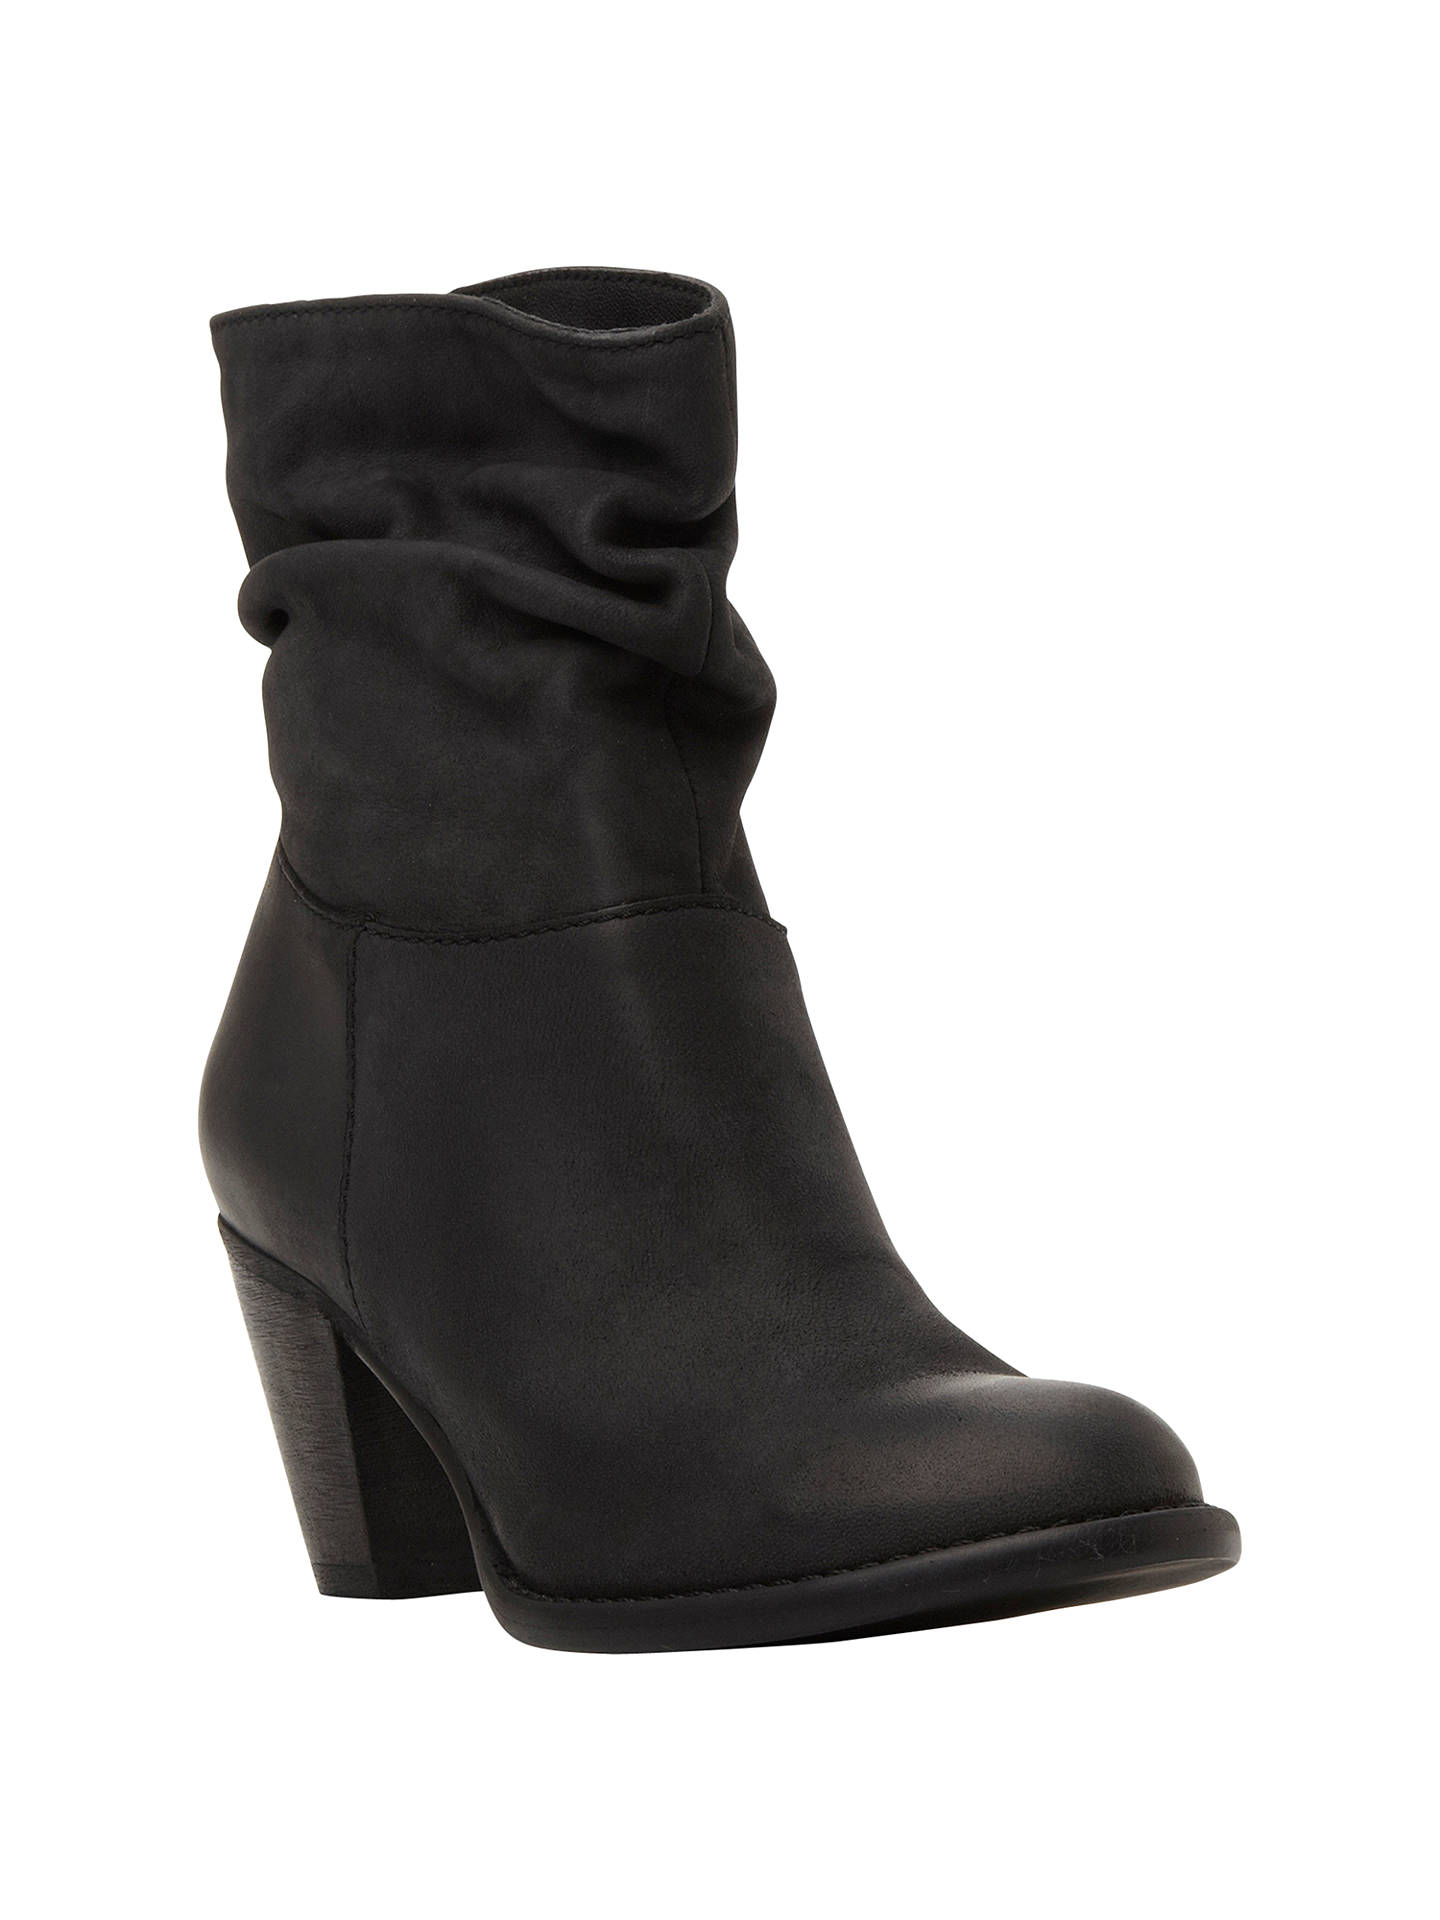 d7c4b3a0f0fd Steve Madden Welded Slouch Leather Ankle Boots at John Lewis   Partners